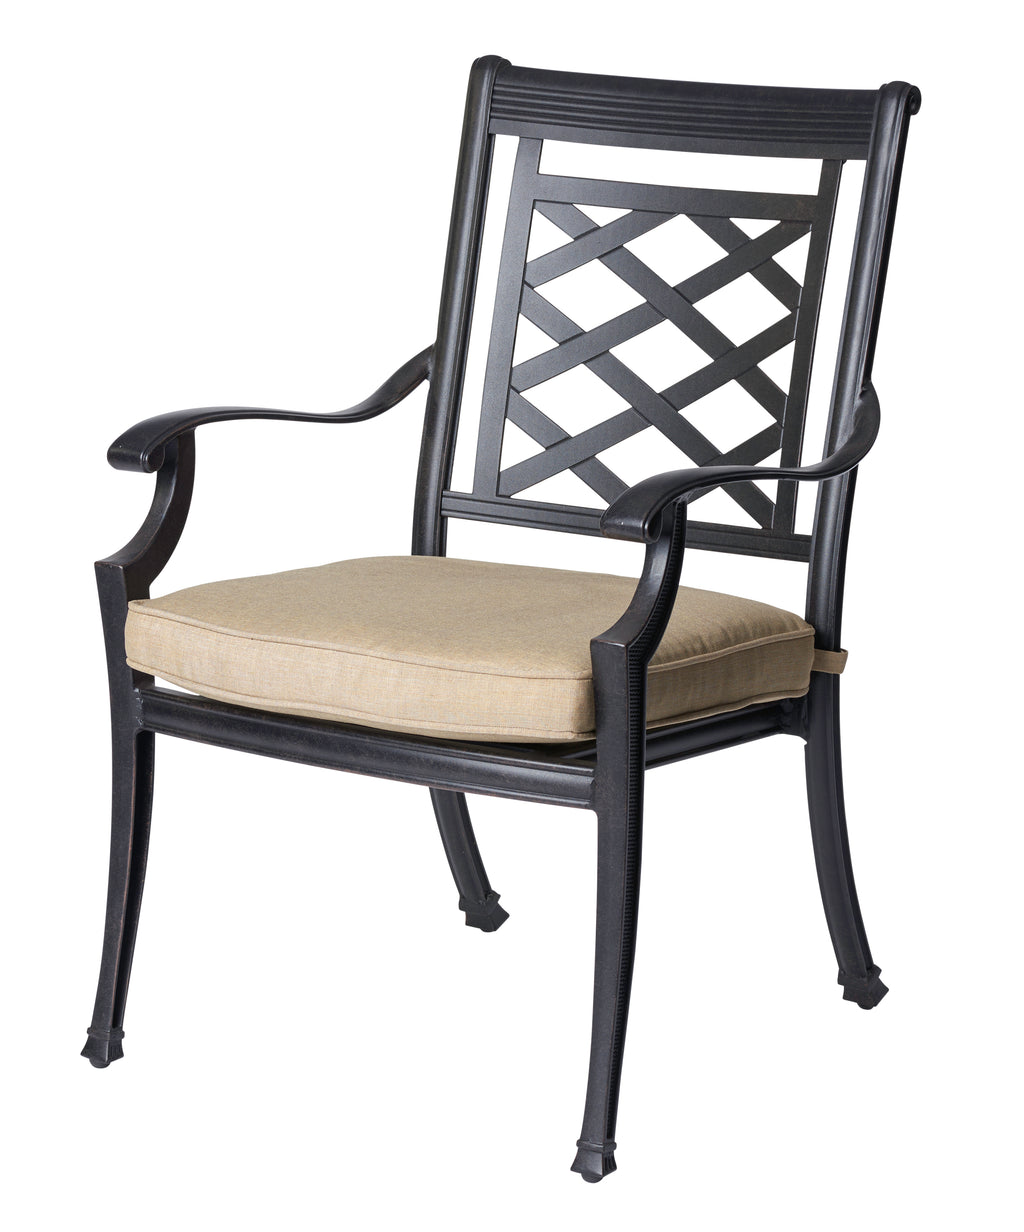 Yarra Cast Aluminium Chair - Cozy Indoor Outdoor Furniture